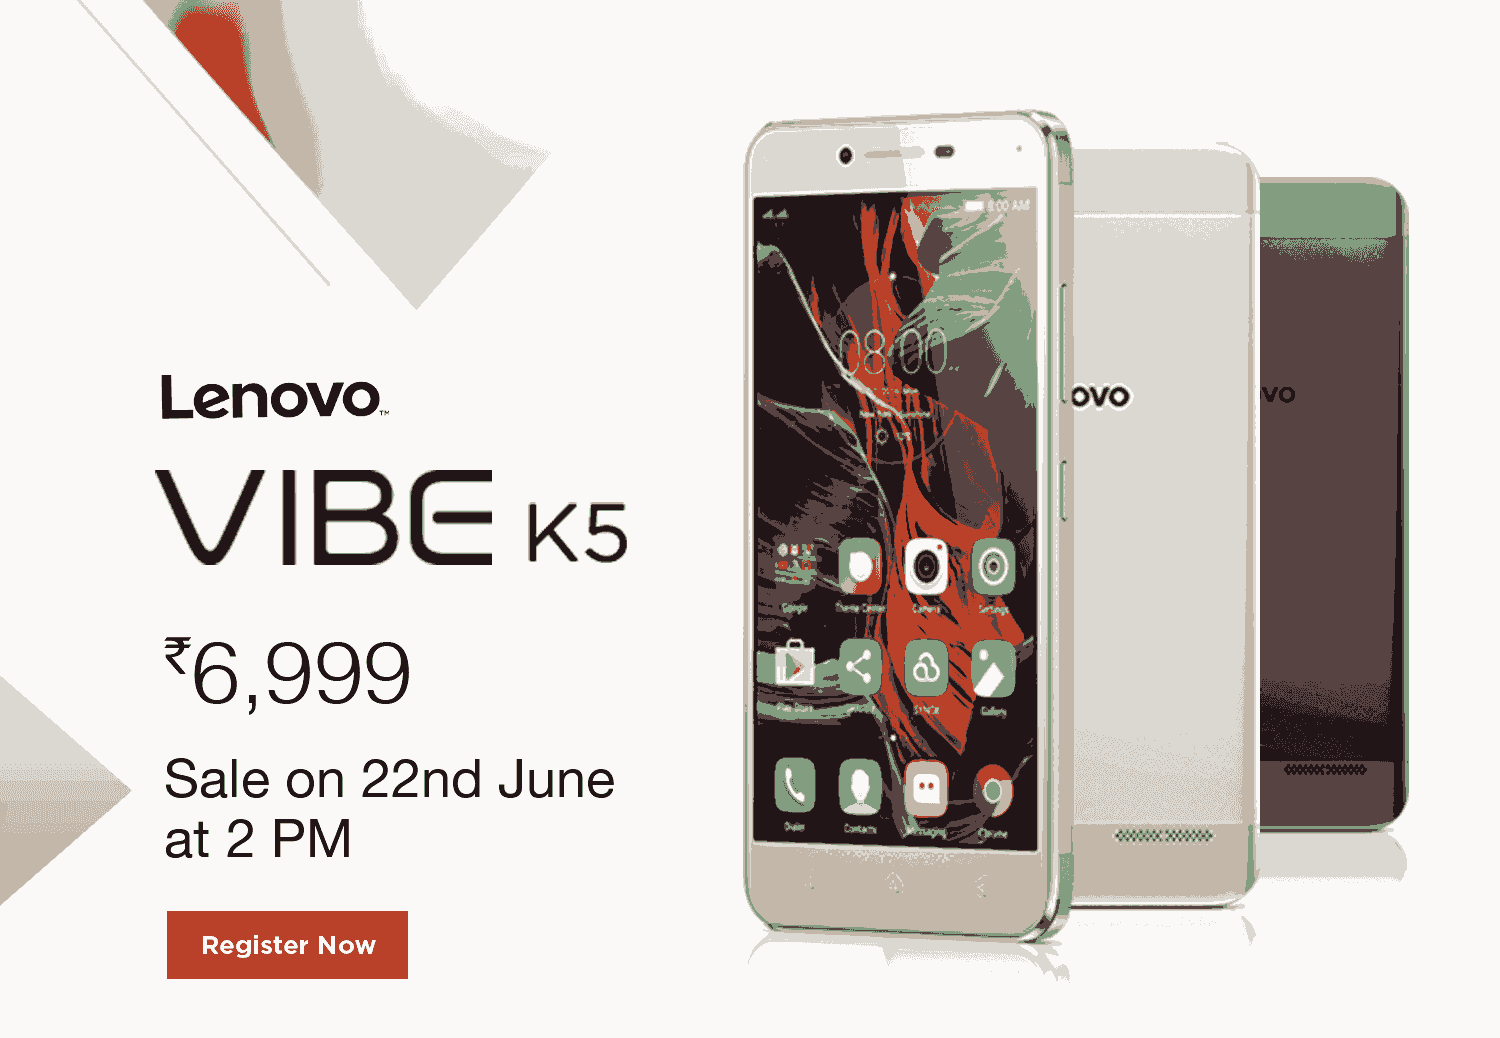 Lenovo VIBE K5 exclusive sale on Amazon.in starting June 22 and registrations for the sale are open on Amazon India.